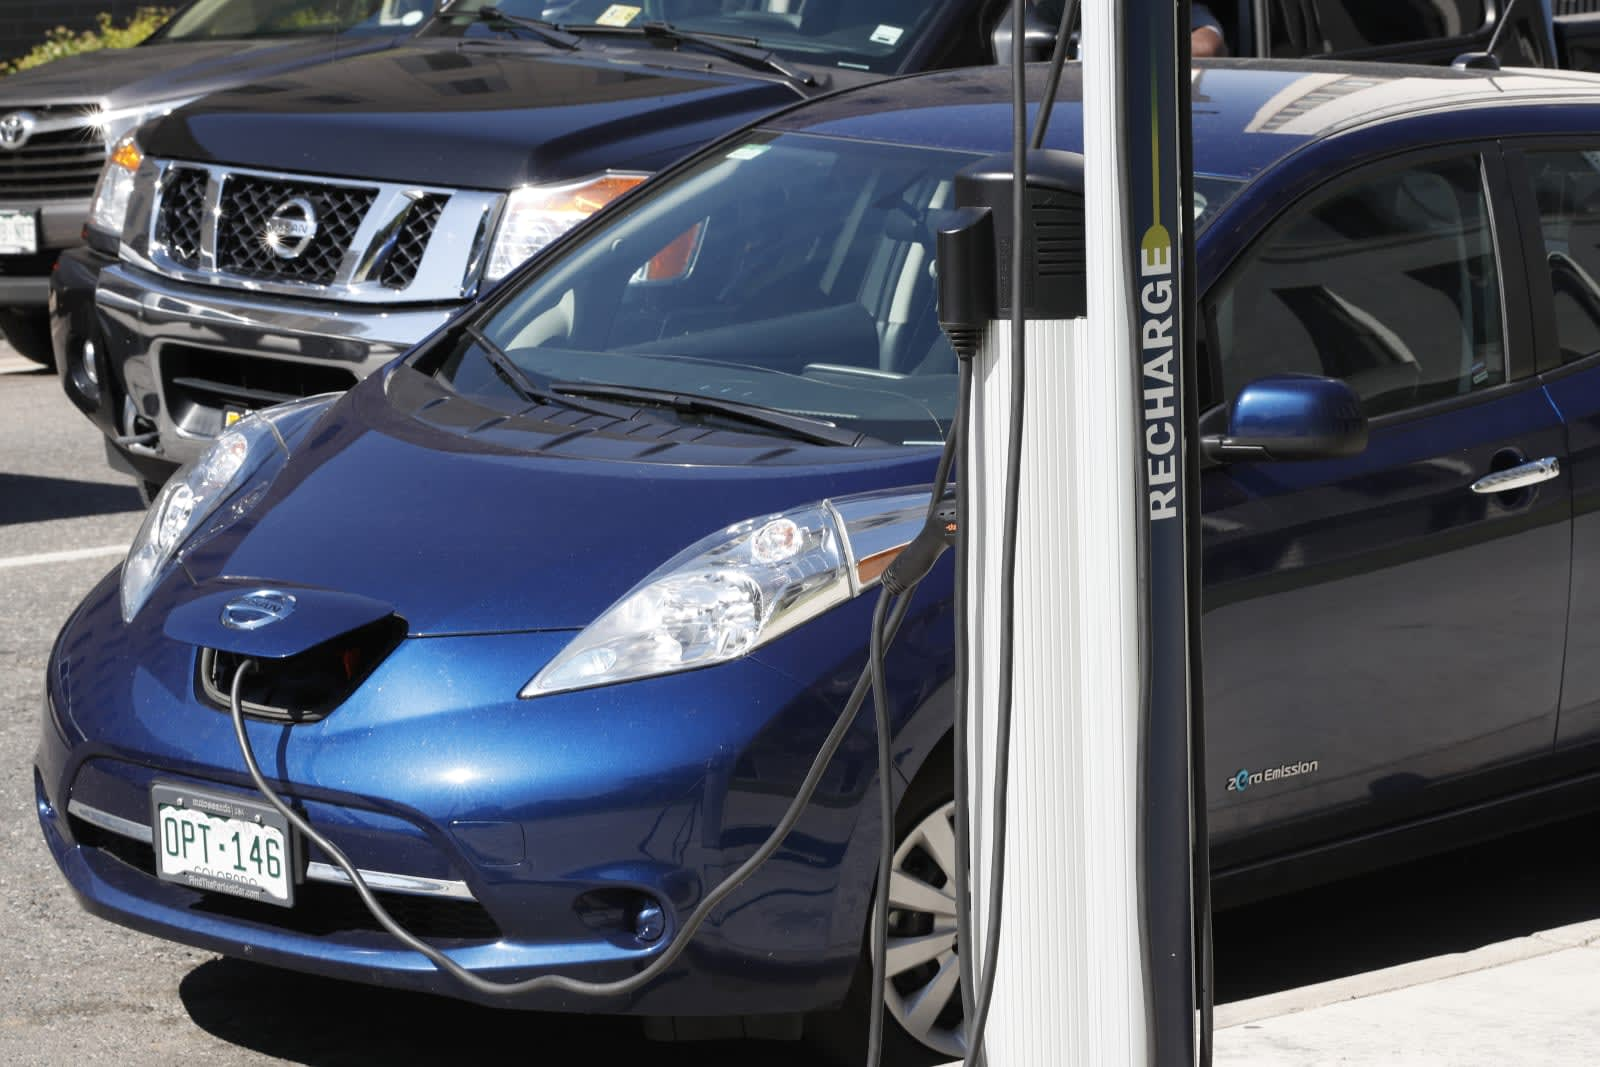 Colorado hopes to fine gas car drivers who park at EV stations